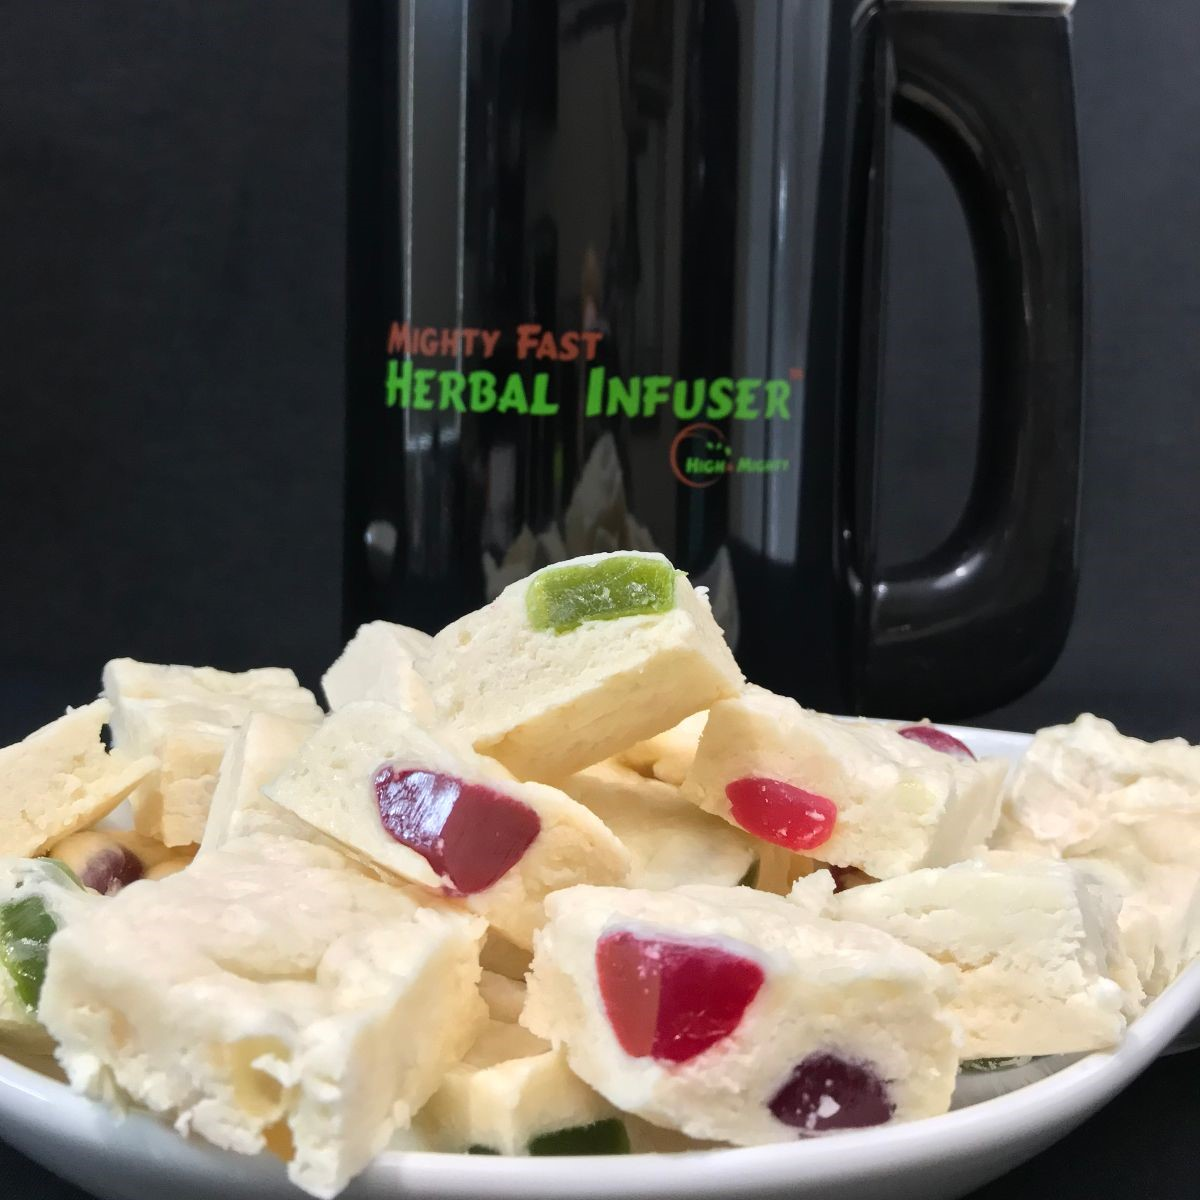 """""""It's not called MIGHTY FAST for nothing, Process took 45 minutes. No guess work,  just follow directions. Edibles were incredible""""-robin–USE Code """" chef420 """" for $30.00 OFF!!   https://t.co/Eu0x9NNC5G   #Chef420 @herbalinfuser #Edibles #Medibles #Happy420 #420day #420blazeit https://t.co/egHrAmHaF2"""